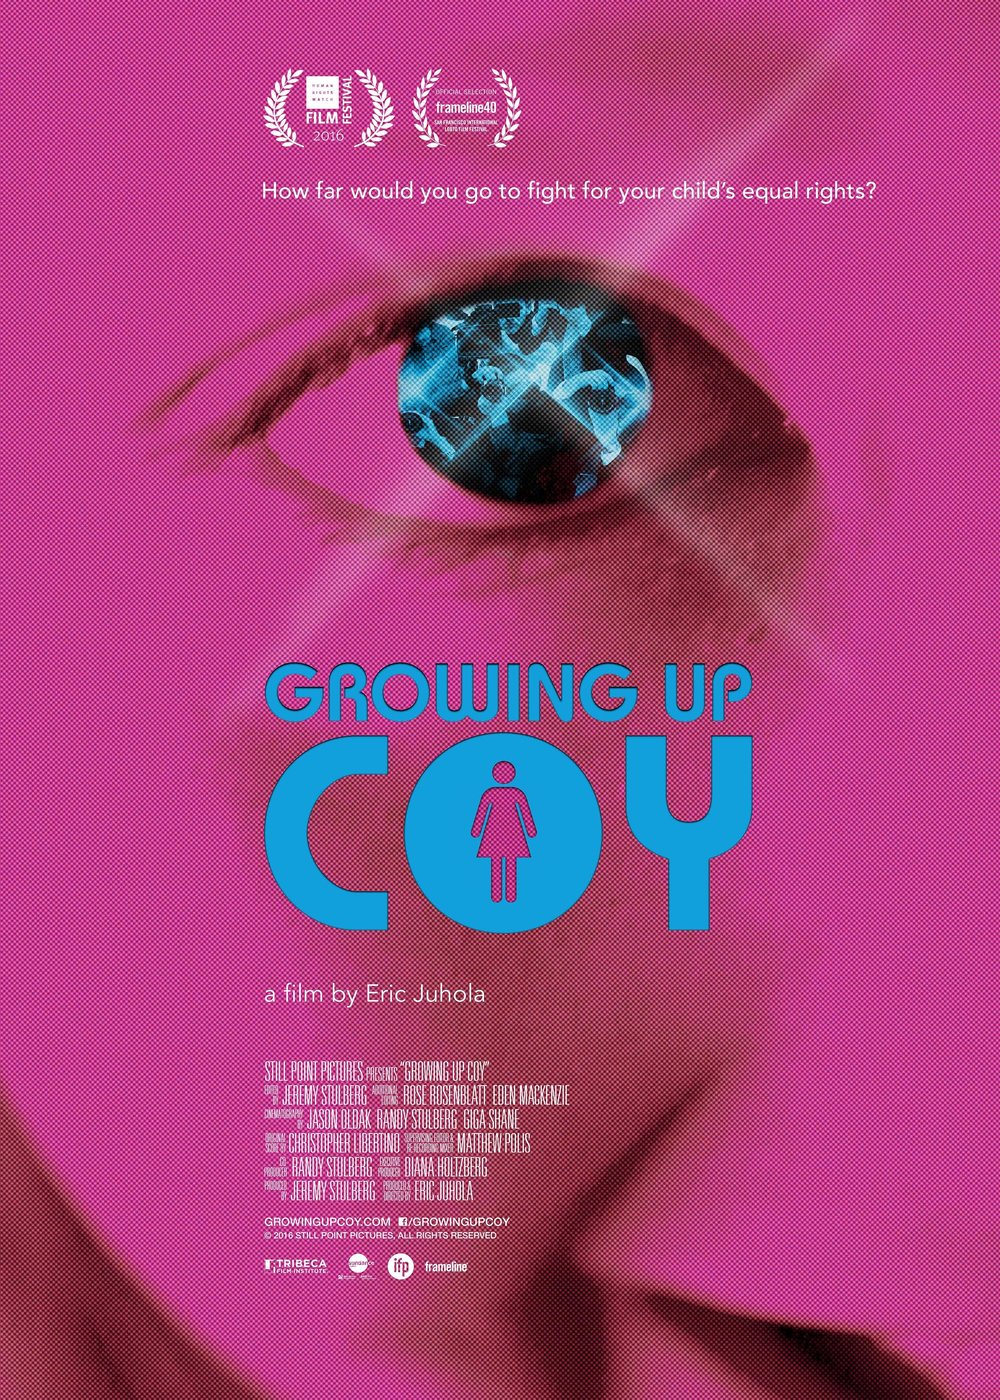 Growing Up Coy - 2016, USA, 90 min, in EnglishA Colorado family is thrust into the international media spotlight when they fight for the rights of their 6-year-old transgender daughter in a landmark civil rights case.